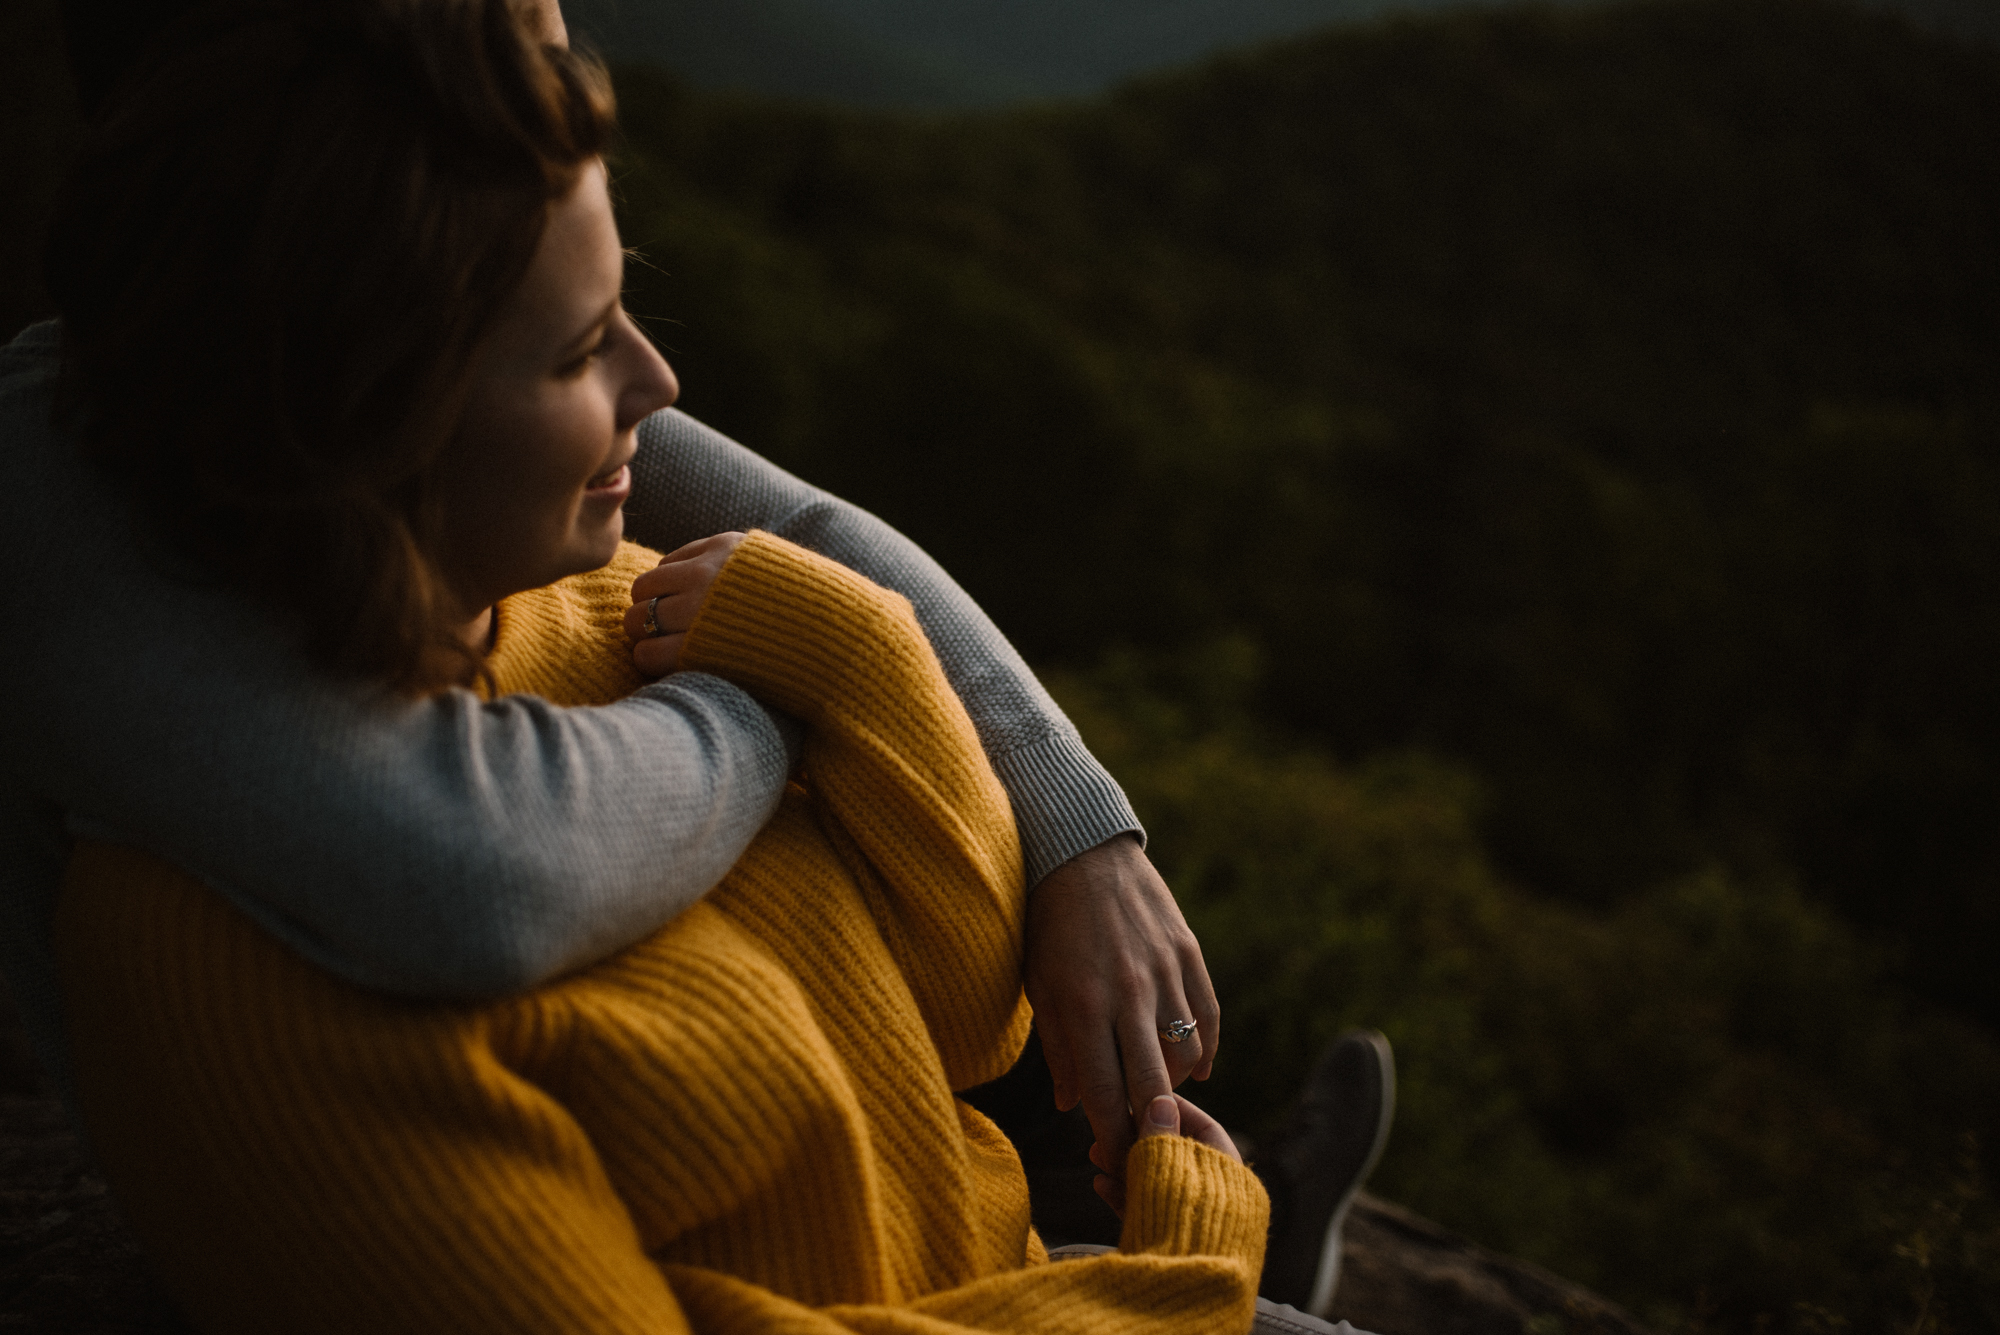 Sloane and Evan Sunrise Engagement Session in Shenandoah National Park - Things to Do in Luray Virginia - Adventurous Couple Photo Shoot White Sails Creative_10.jpg